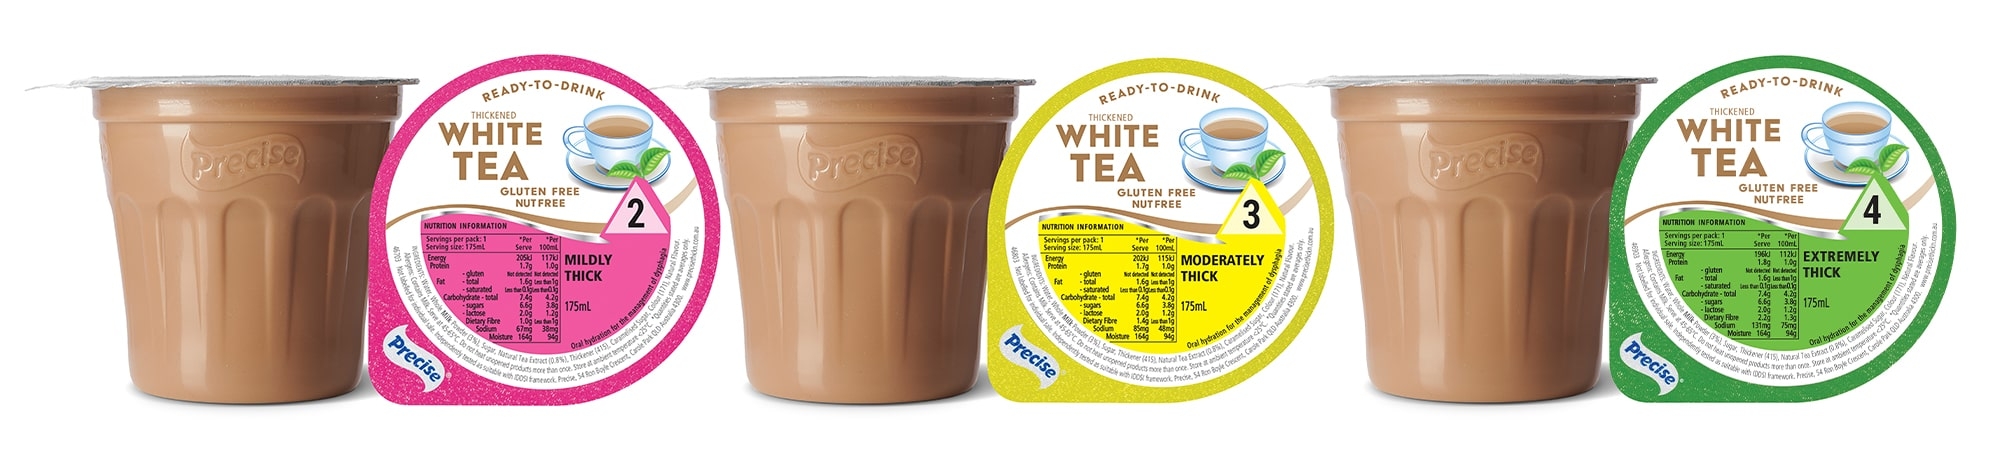 RTD White Tea